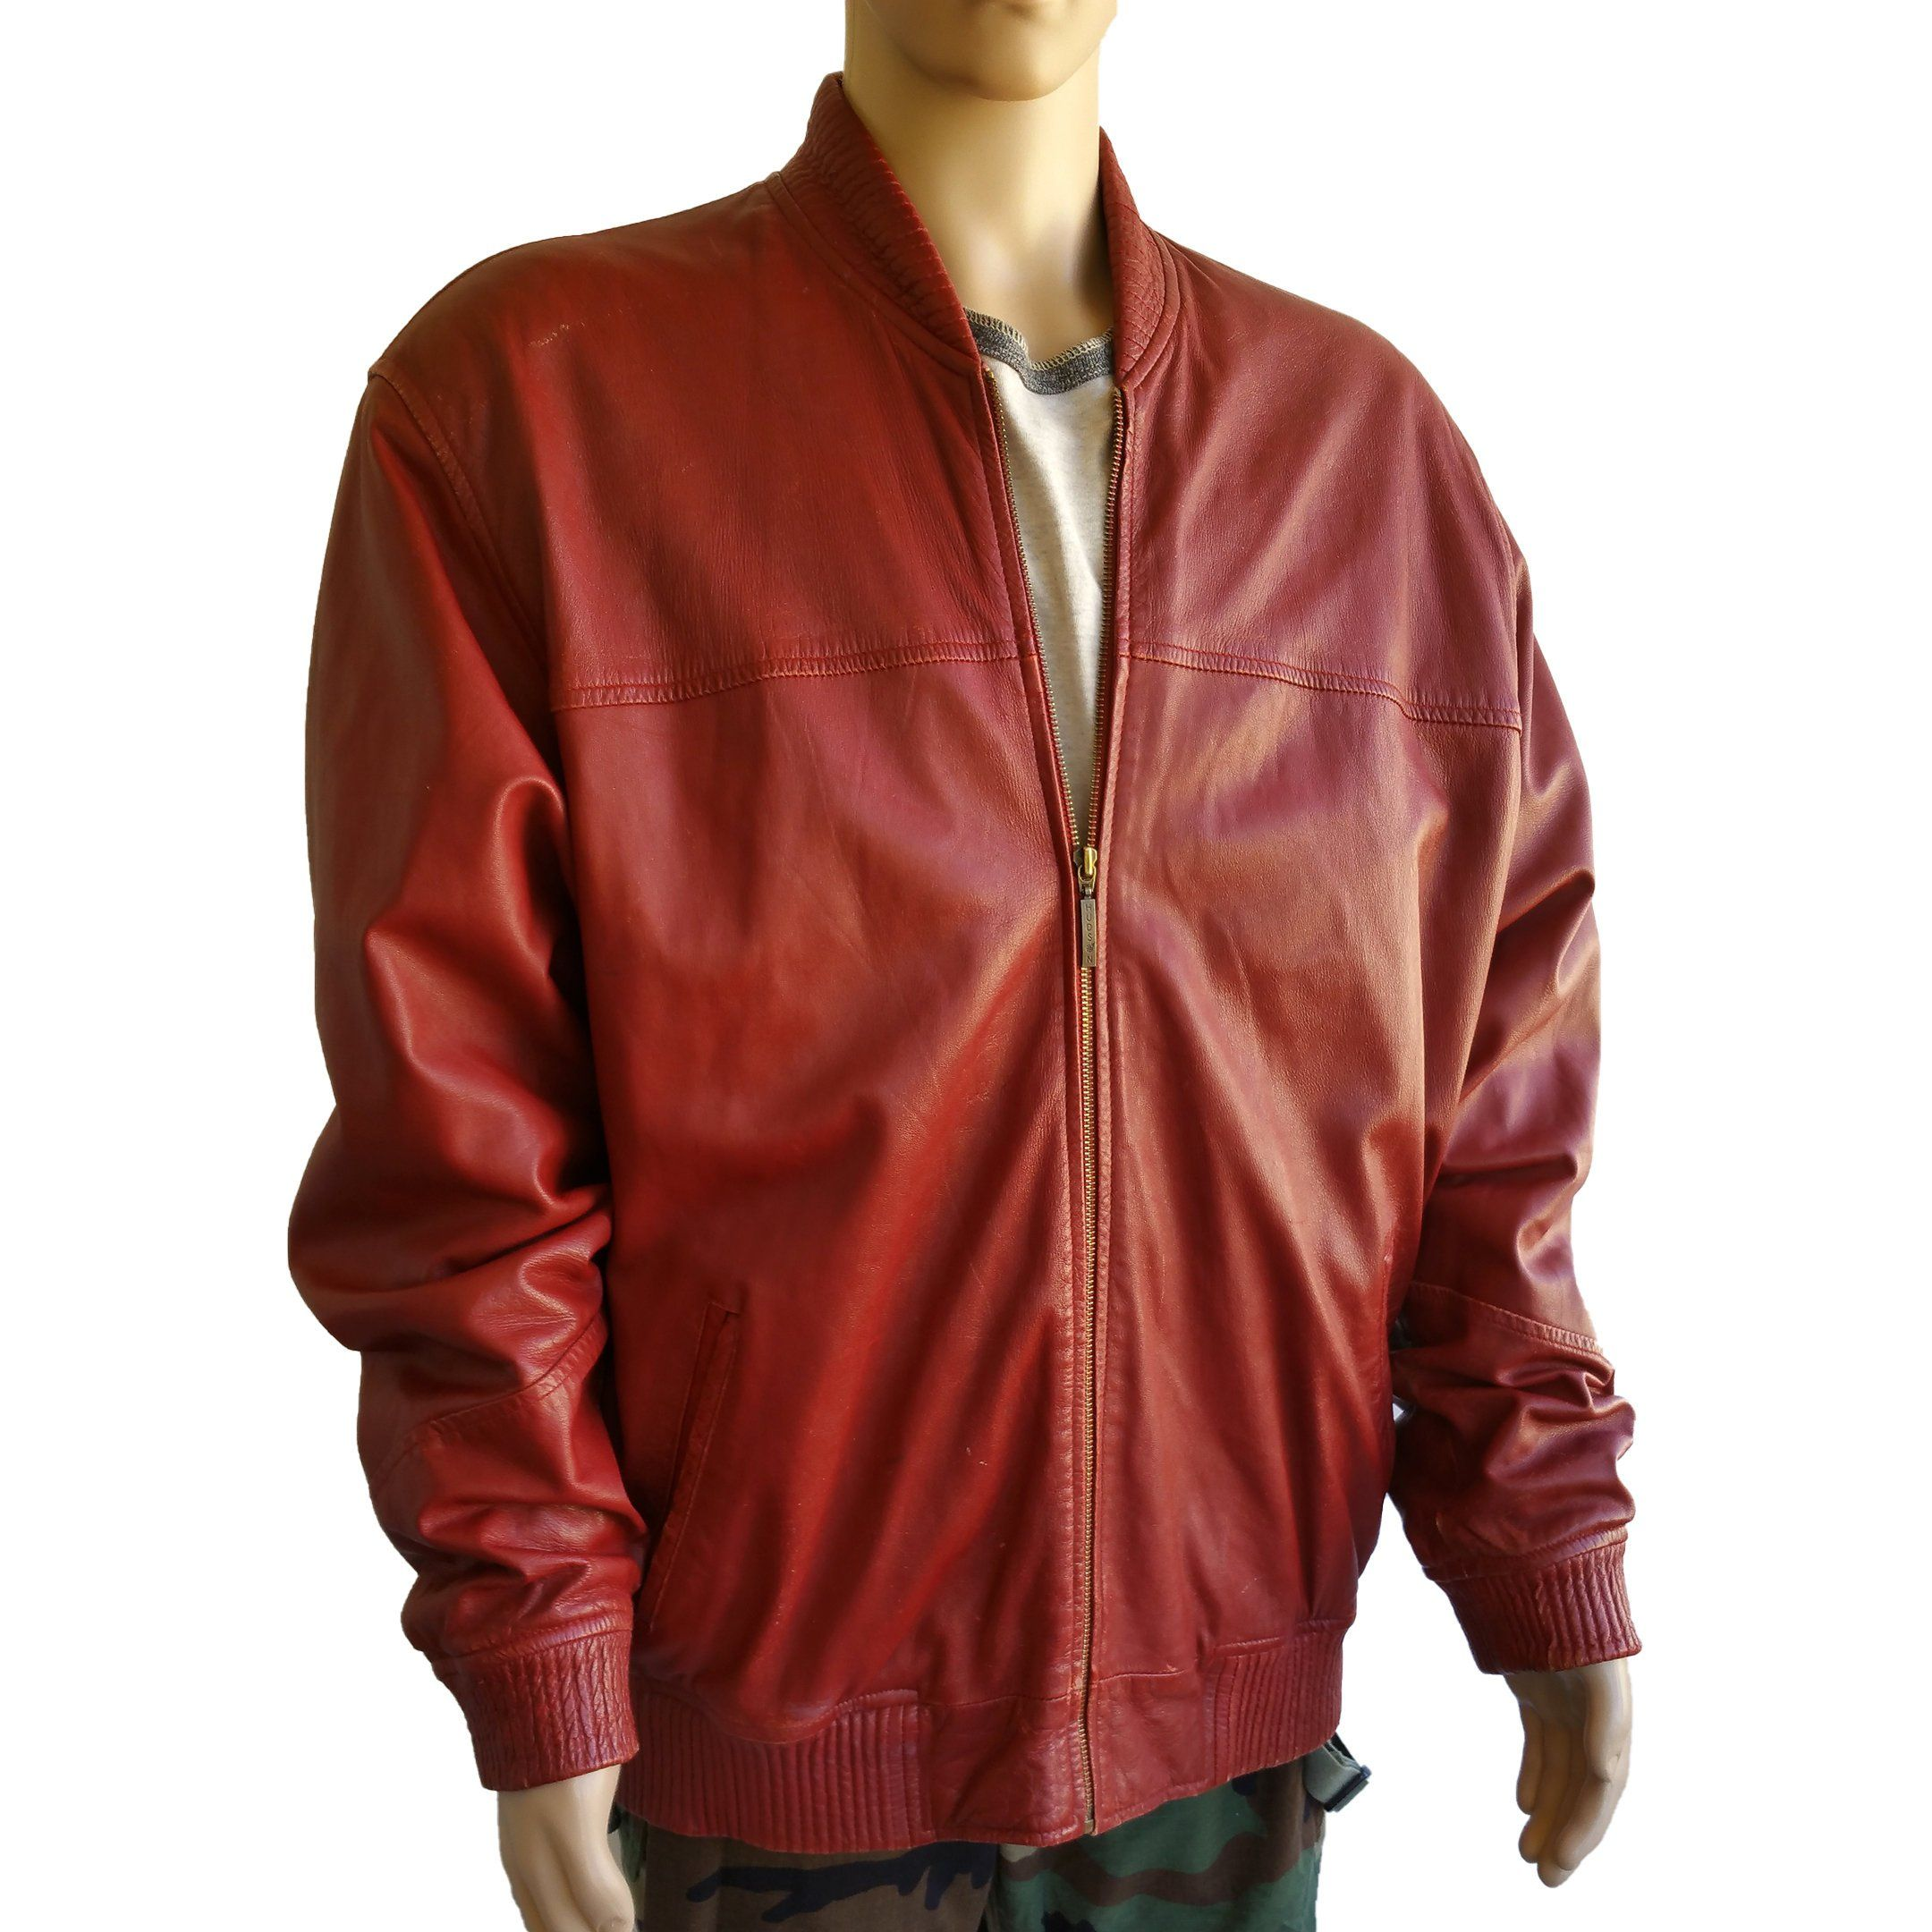 Vintage Mens Leather Bomber Jacket Hudson Outerwear Size 2xl Xxl Red Oxblood Distressed Leather Coat By Mens Leather Bomber Jacket Bomber Jacket Leather Bomber [ 2160 x 2160 Pixel ]